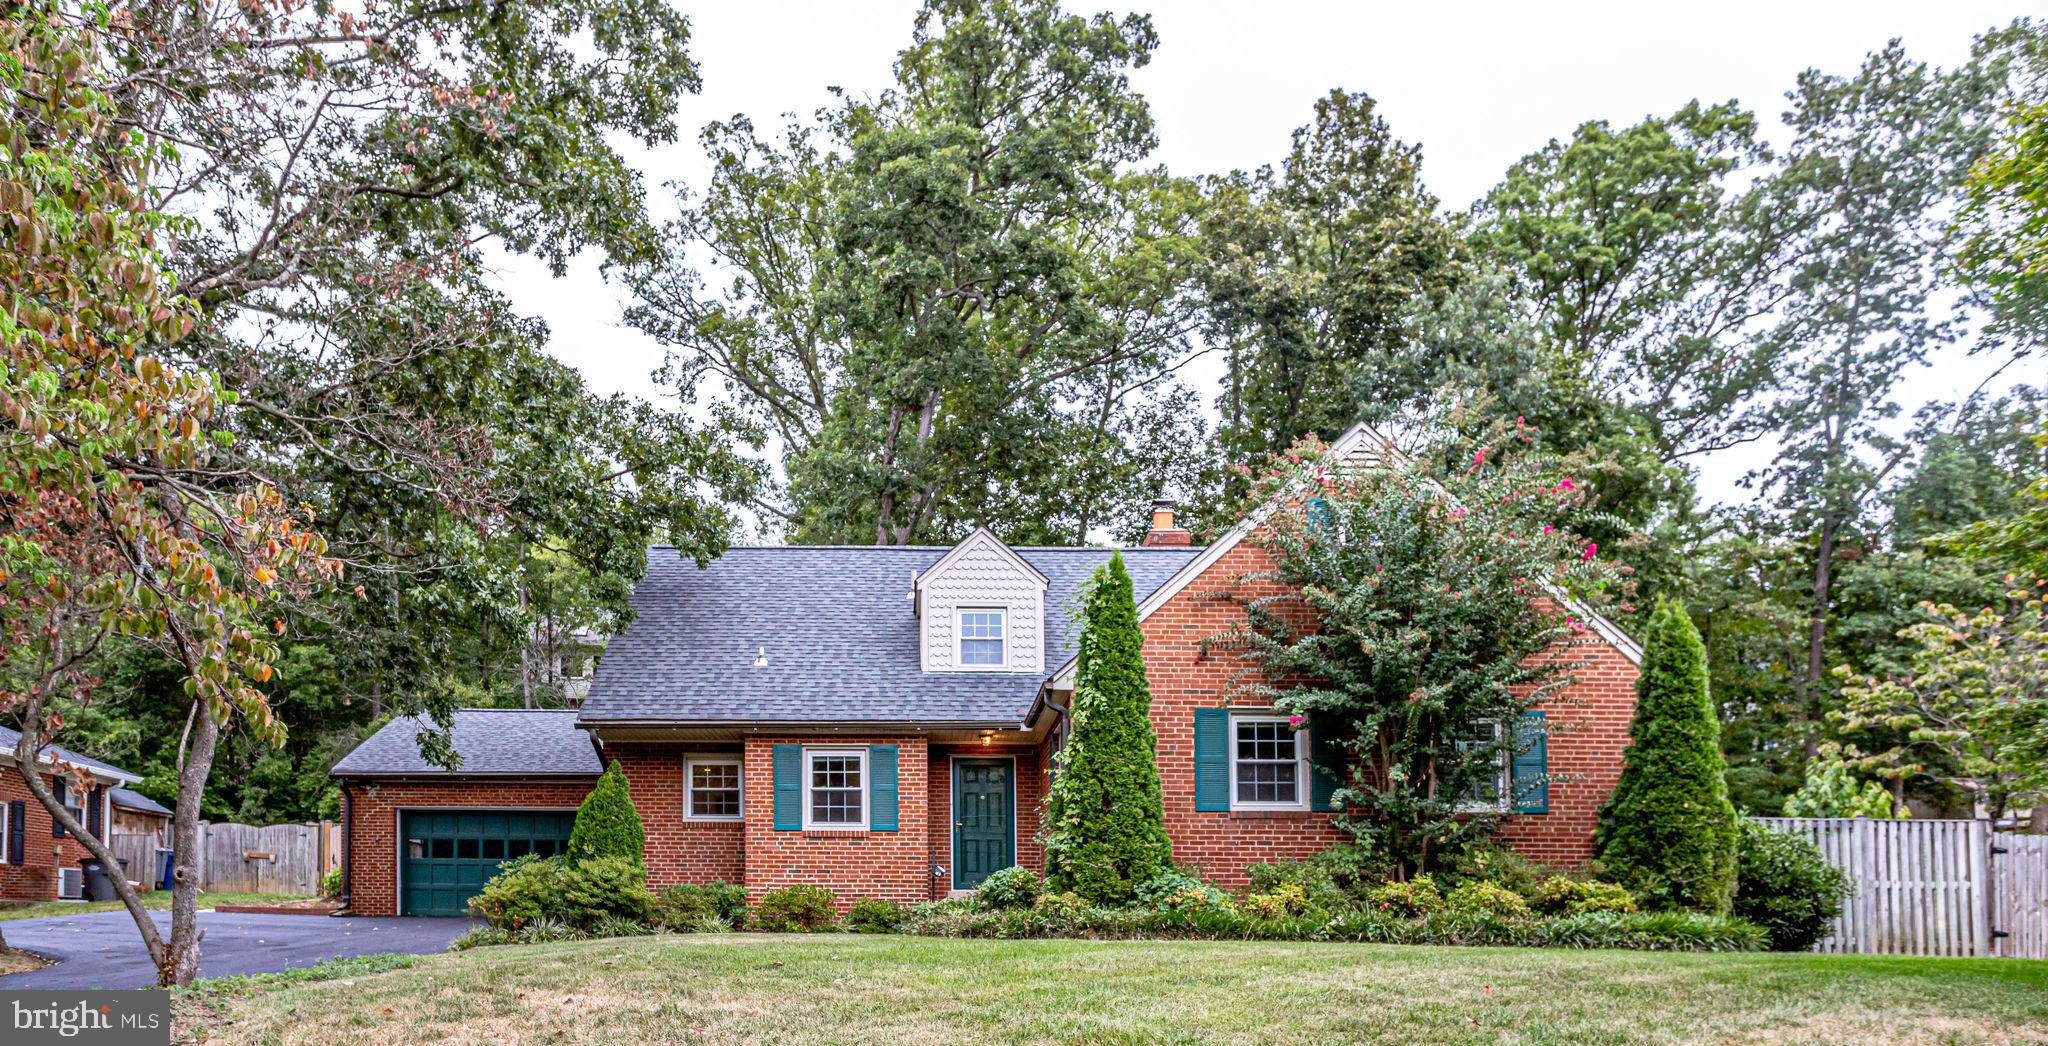 Located in the prime commuter-friendly neighborhood of historic Wilton Woods (Alexandria FFX County), this custom built, charming Cape Cod with $200K in recent updates, including a new roof, brick patio and renovated kitchen features 5 comfortable bedrooms, multiple areas for living and a sunroom to enjoy the backyard view all year long. The central location is minutes from the Huntington Metro and provides easy access to Old Town Alexandria, Kingstowne and Del Ray. All of the area's major arteries, including the Beltway, I-95, I-395 and the GW Parkway are a short drive down Telegraph Rd. making commuting to the Pentagon, Fort Belvoir or D.C. a breeze.